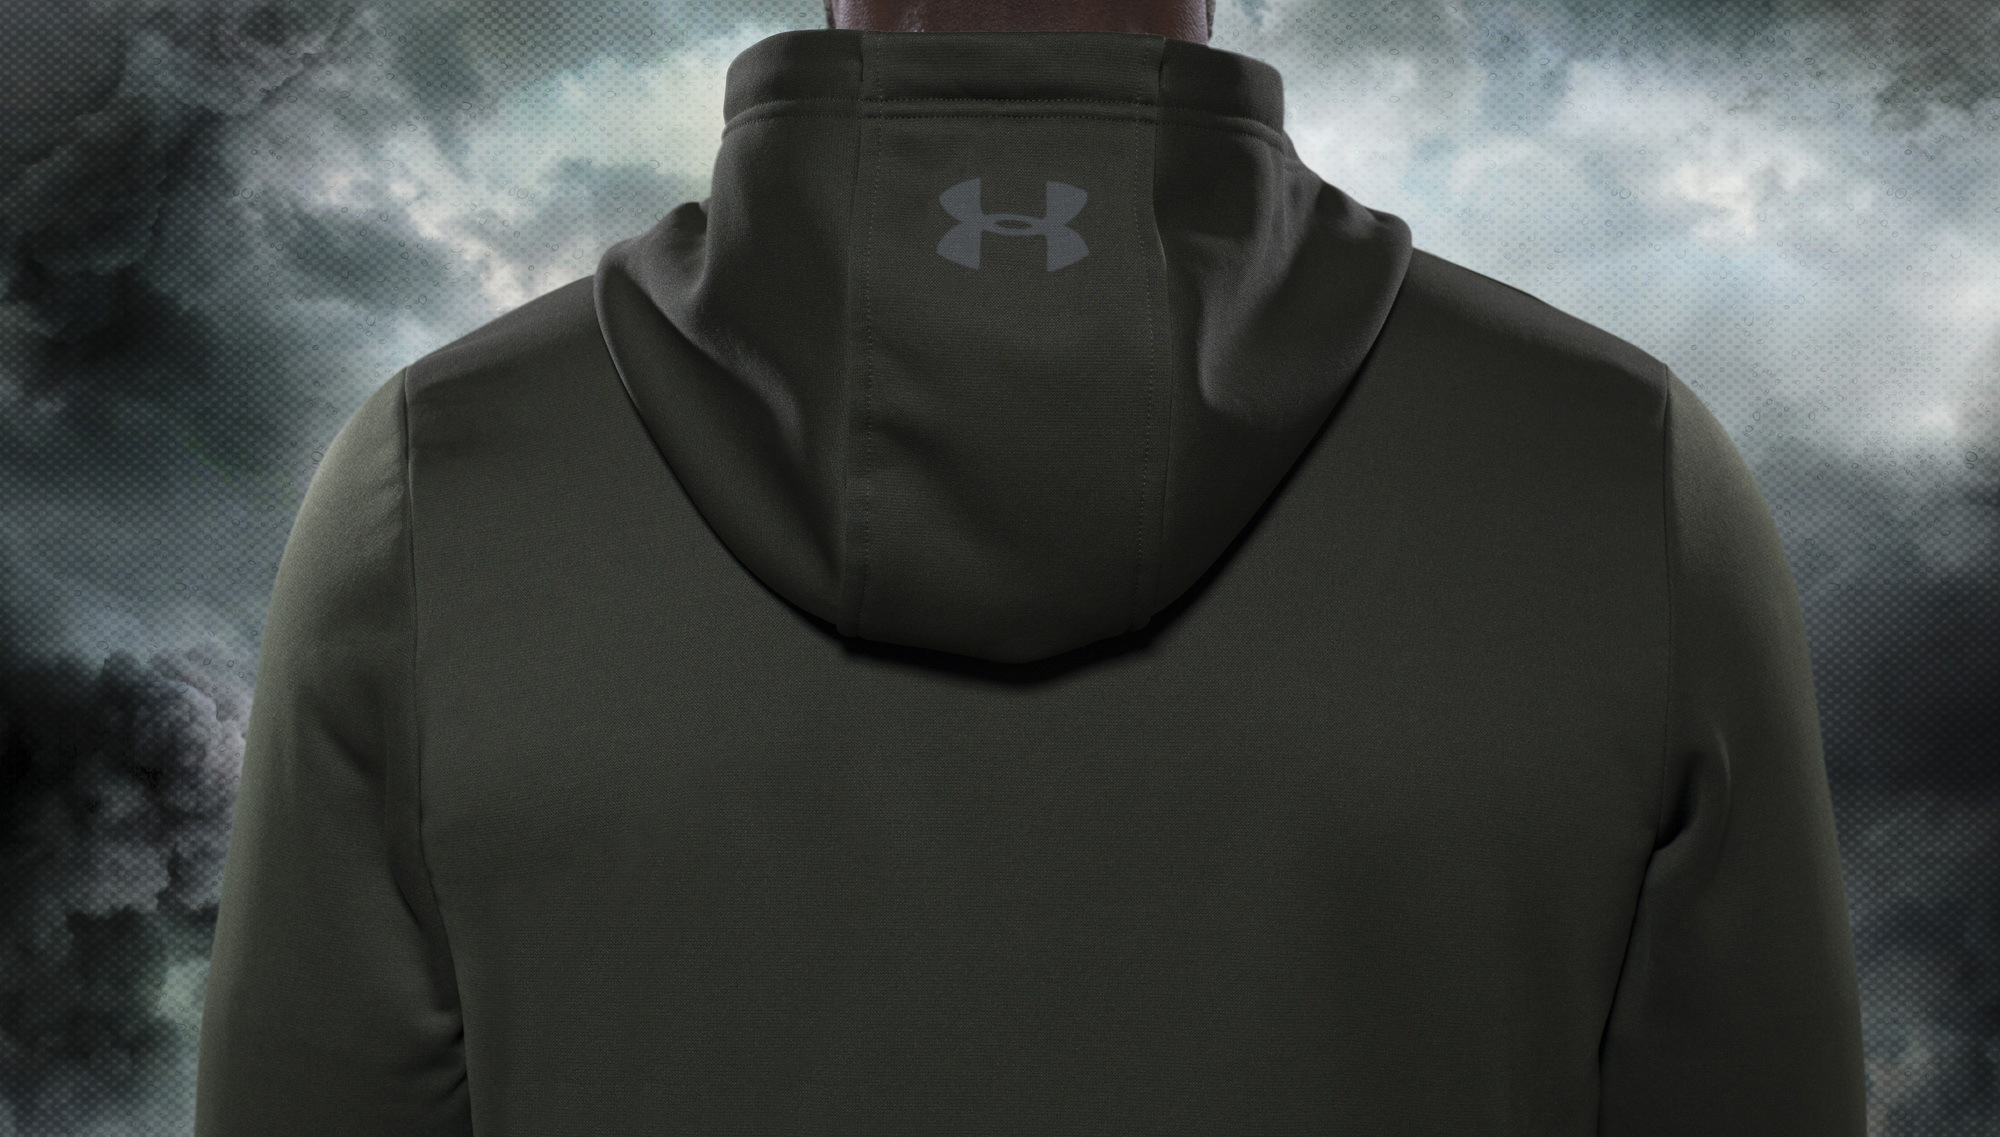 back view of an olive green under armour track top on a stormy background